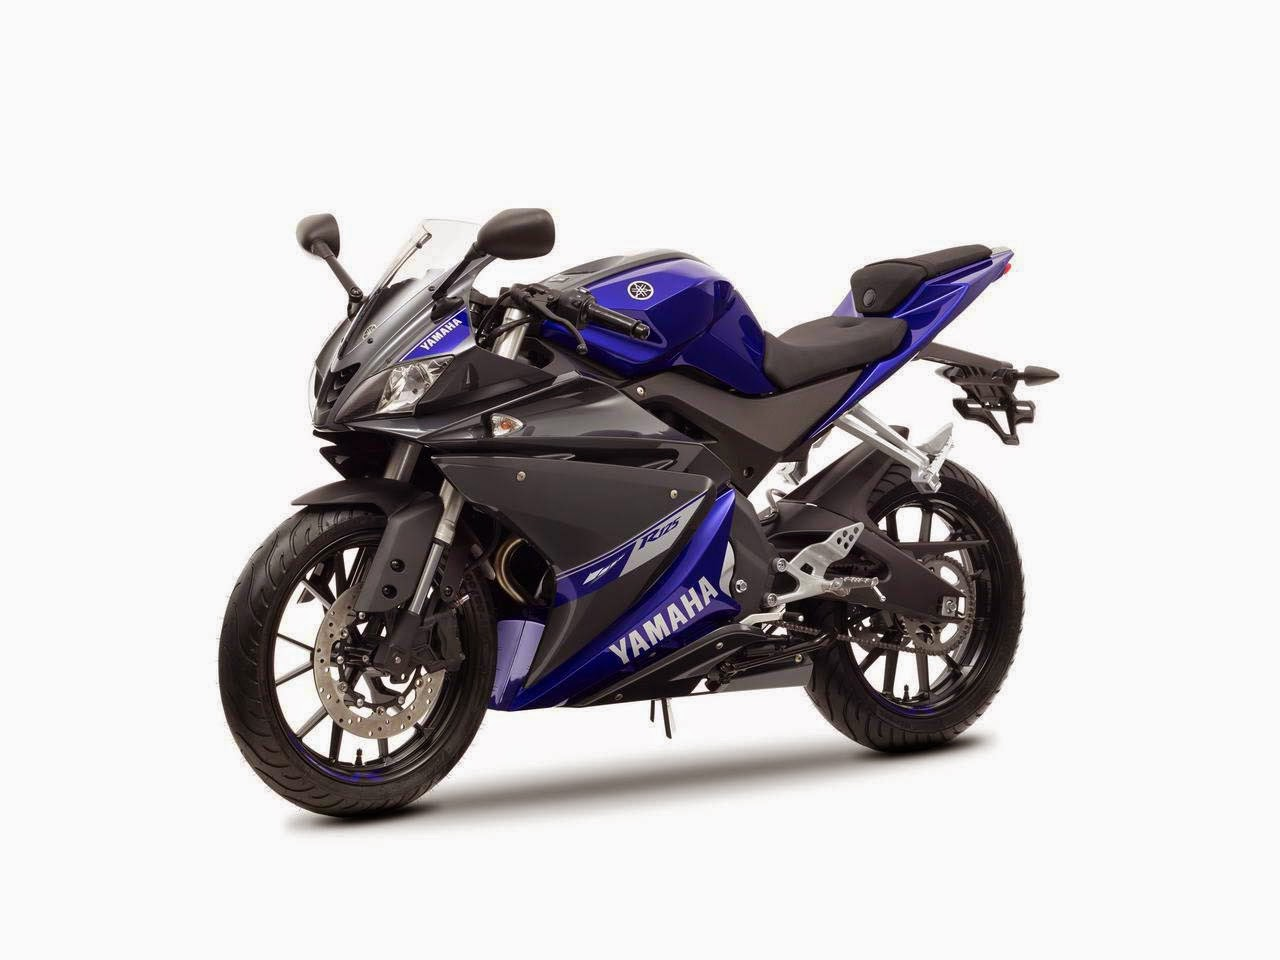 2015 upcoming bike of yamaha yzf r125 bike car art photos images wallpapers pics photos for fun. Black Bedroom Furniture Sets. Home Design Ideas